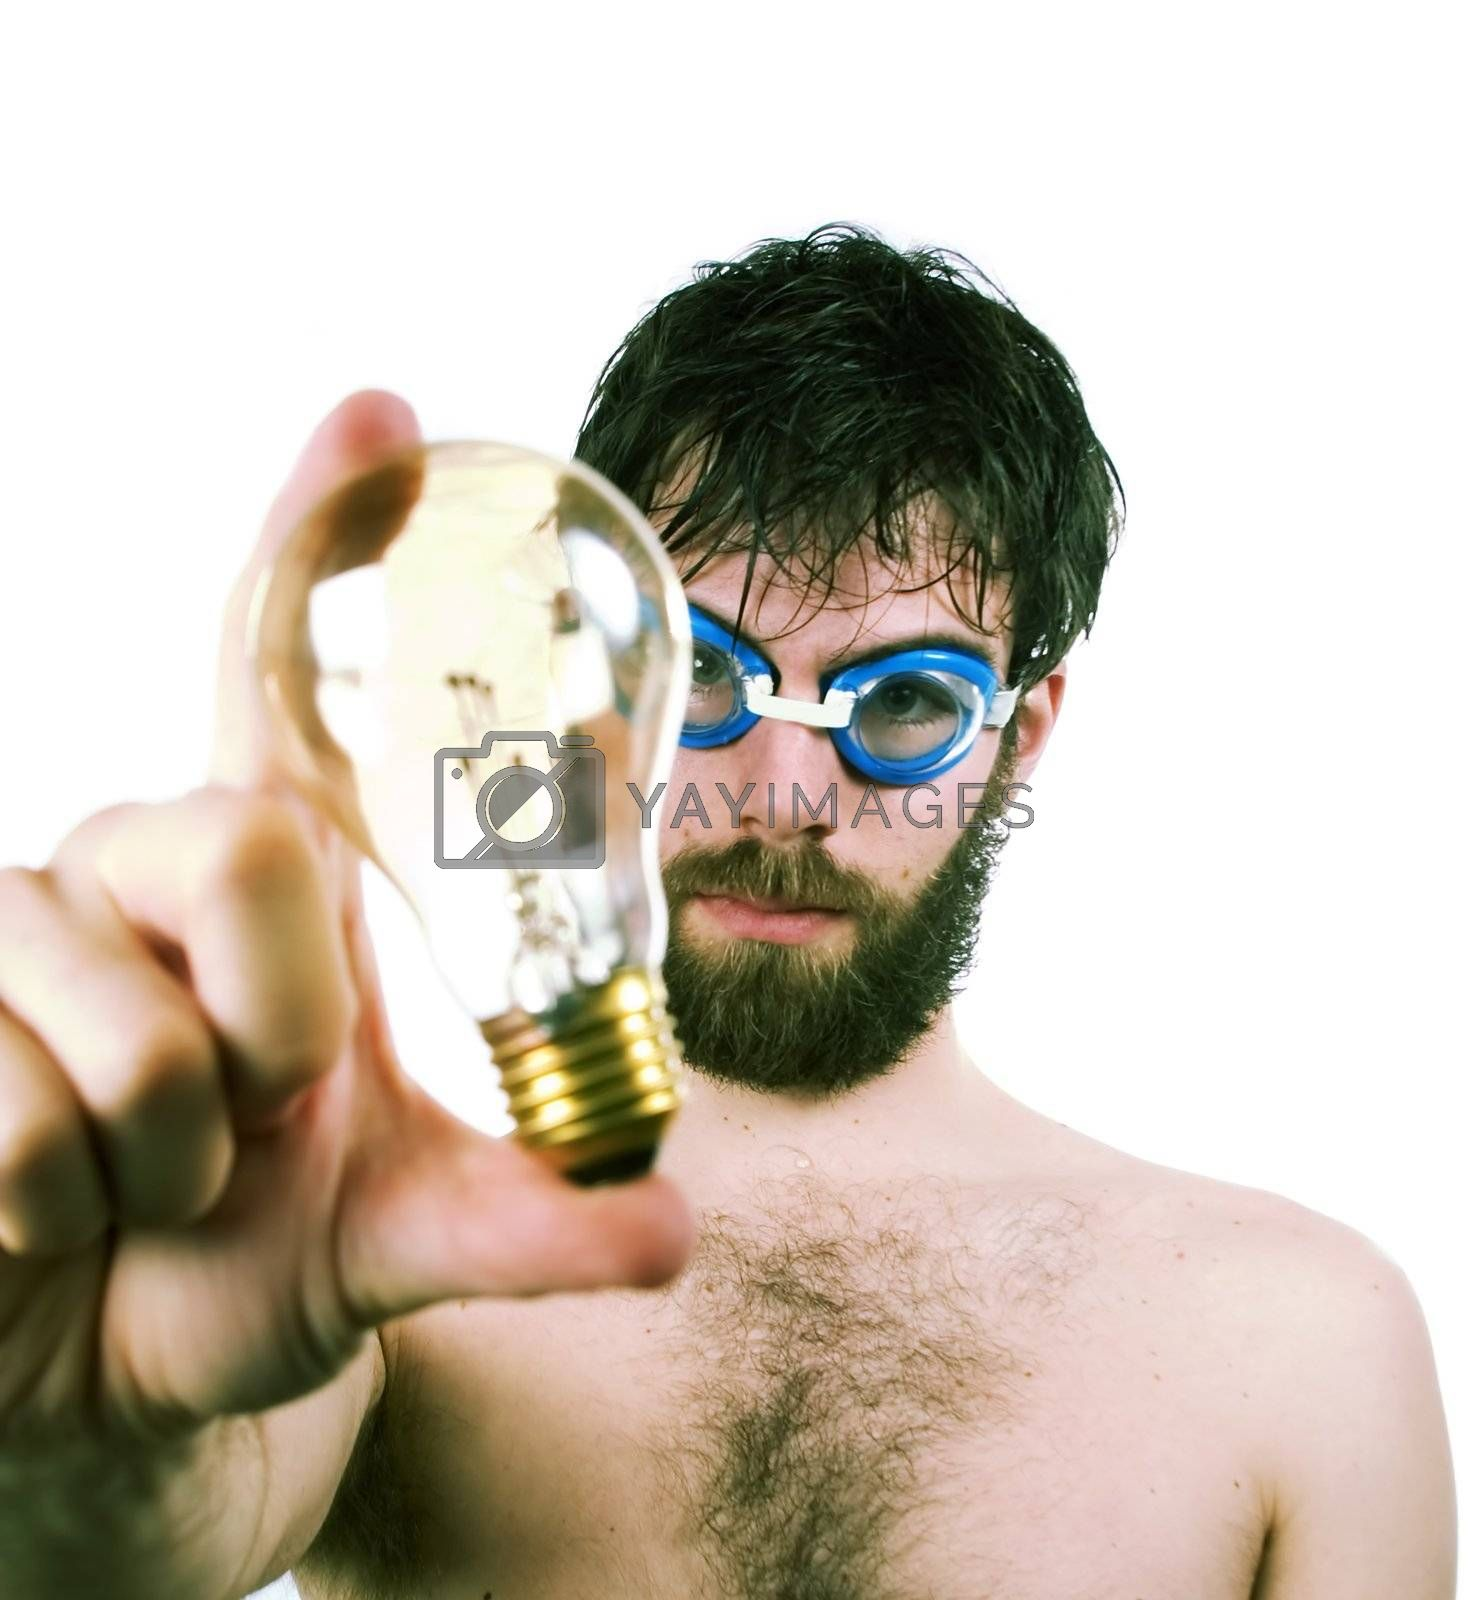 A funny looking male with a bear and swimming goggles, holding a clear light. Concept image for fresh thinking, new ideas.